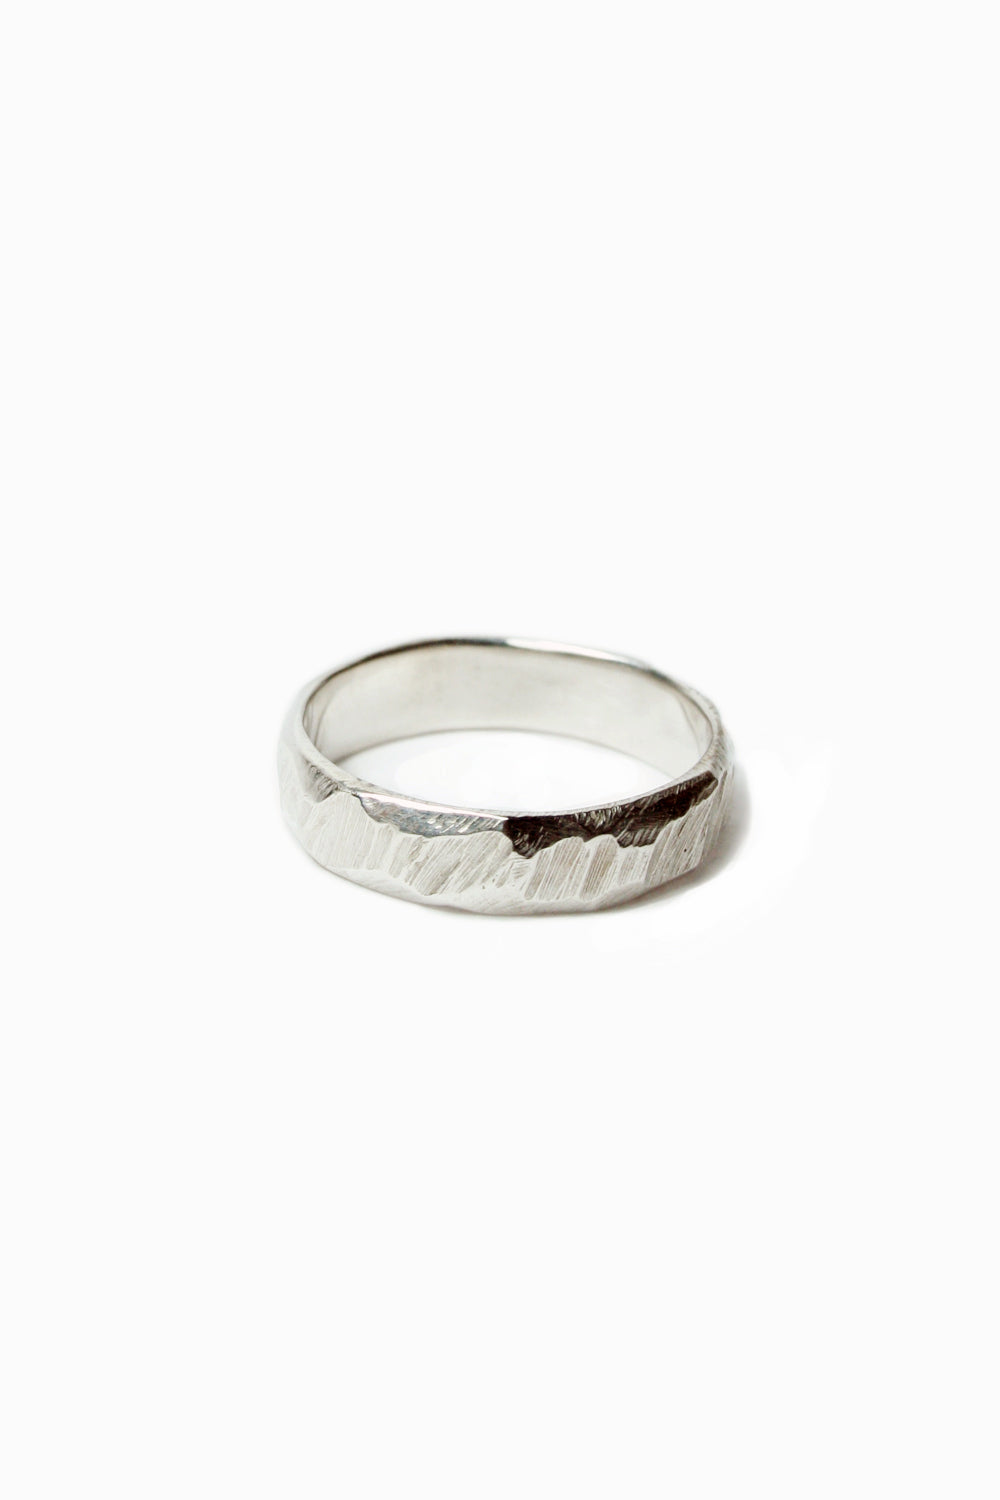 Ragged band Sterling Silver 4 - 10mm